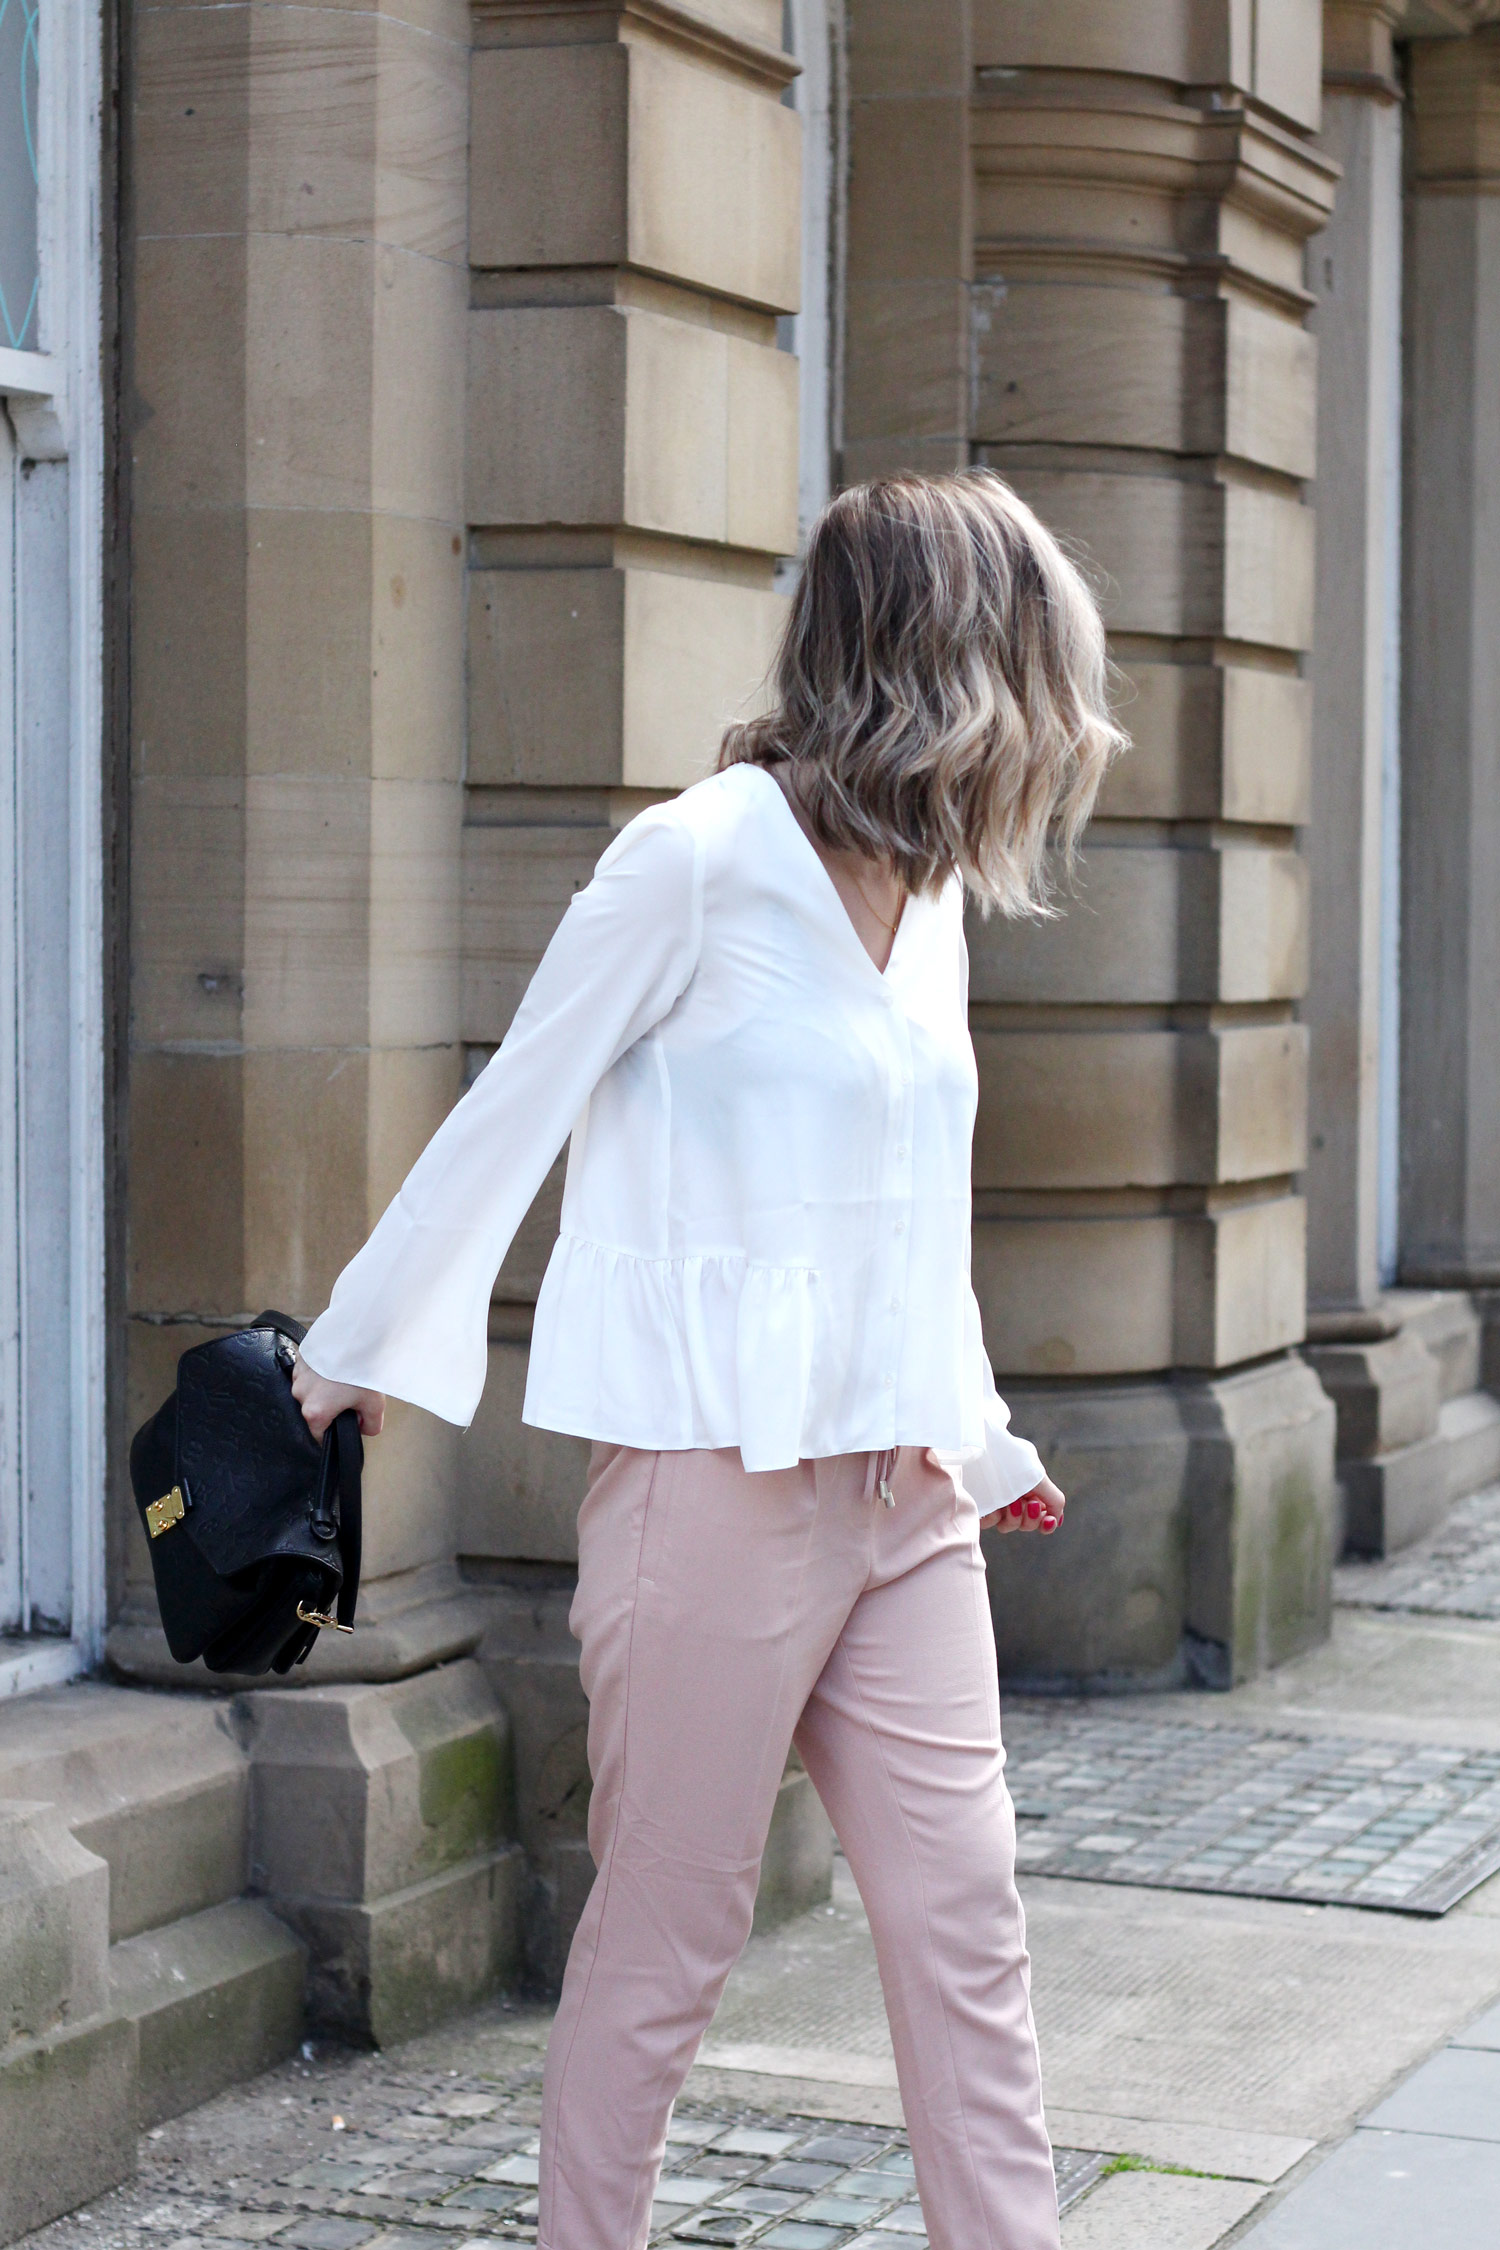 asos-white-ruffle-hem-blouse-M&S-pink-tie-trousers-gucci-jordaan-loafers-red-11